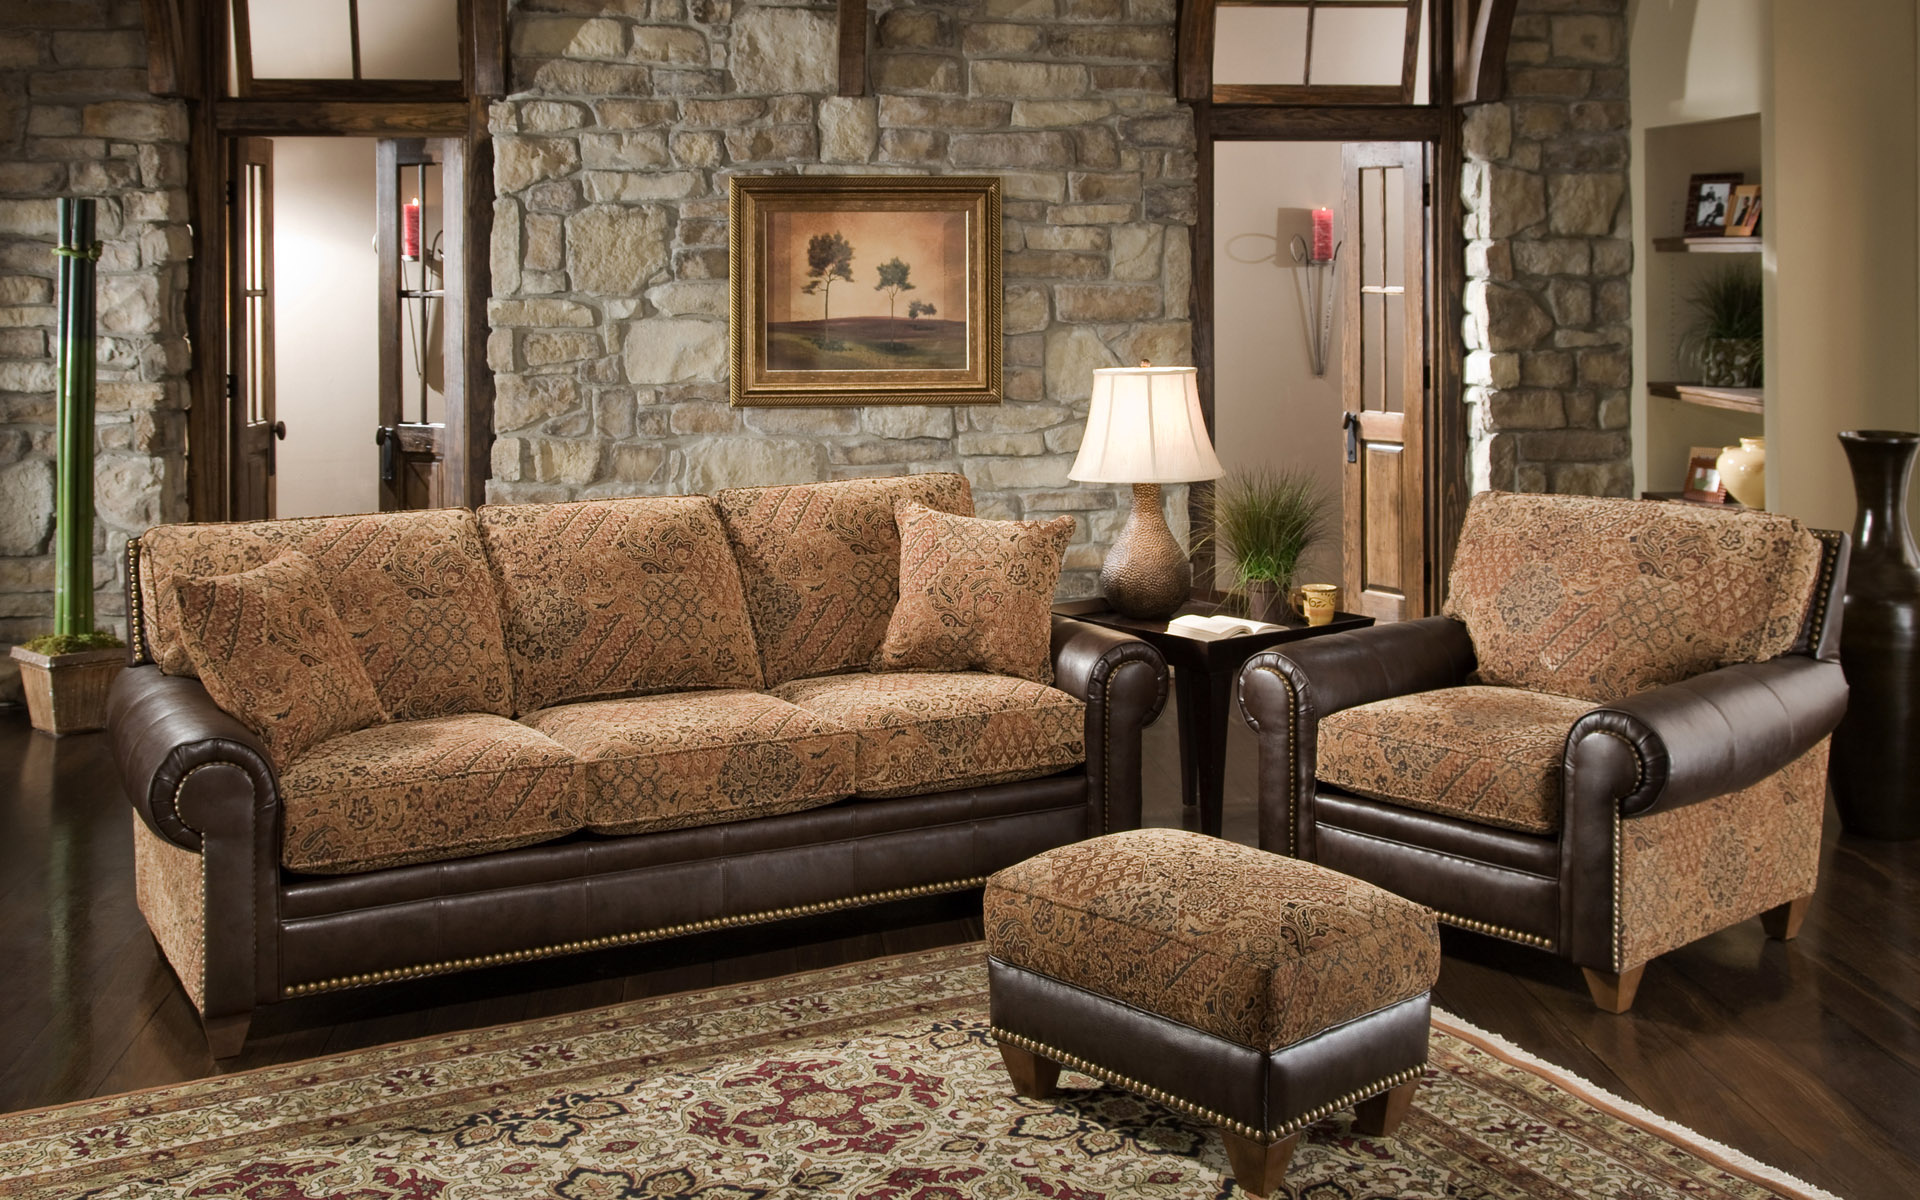 Sofa Set Furniture Download Furniture Full Hd Wallpaper And Background Image